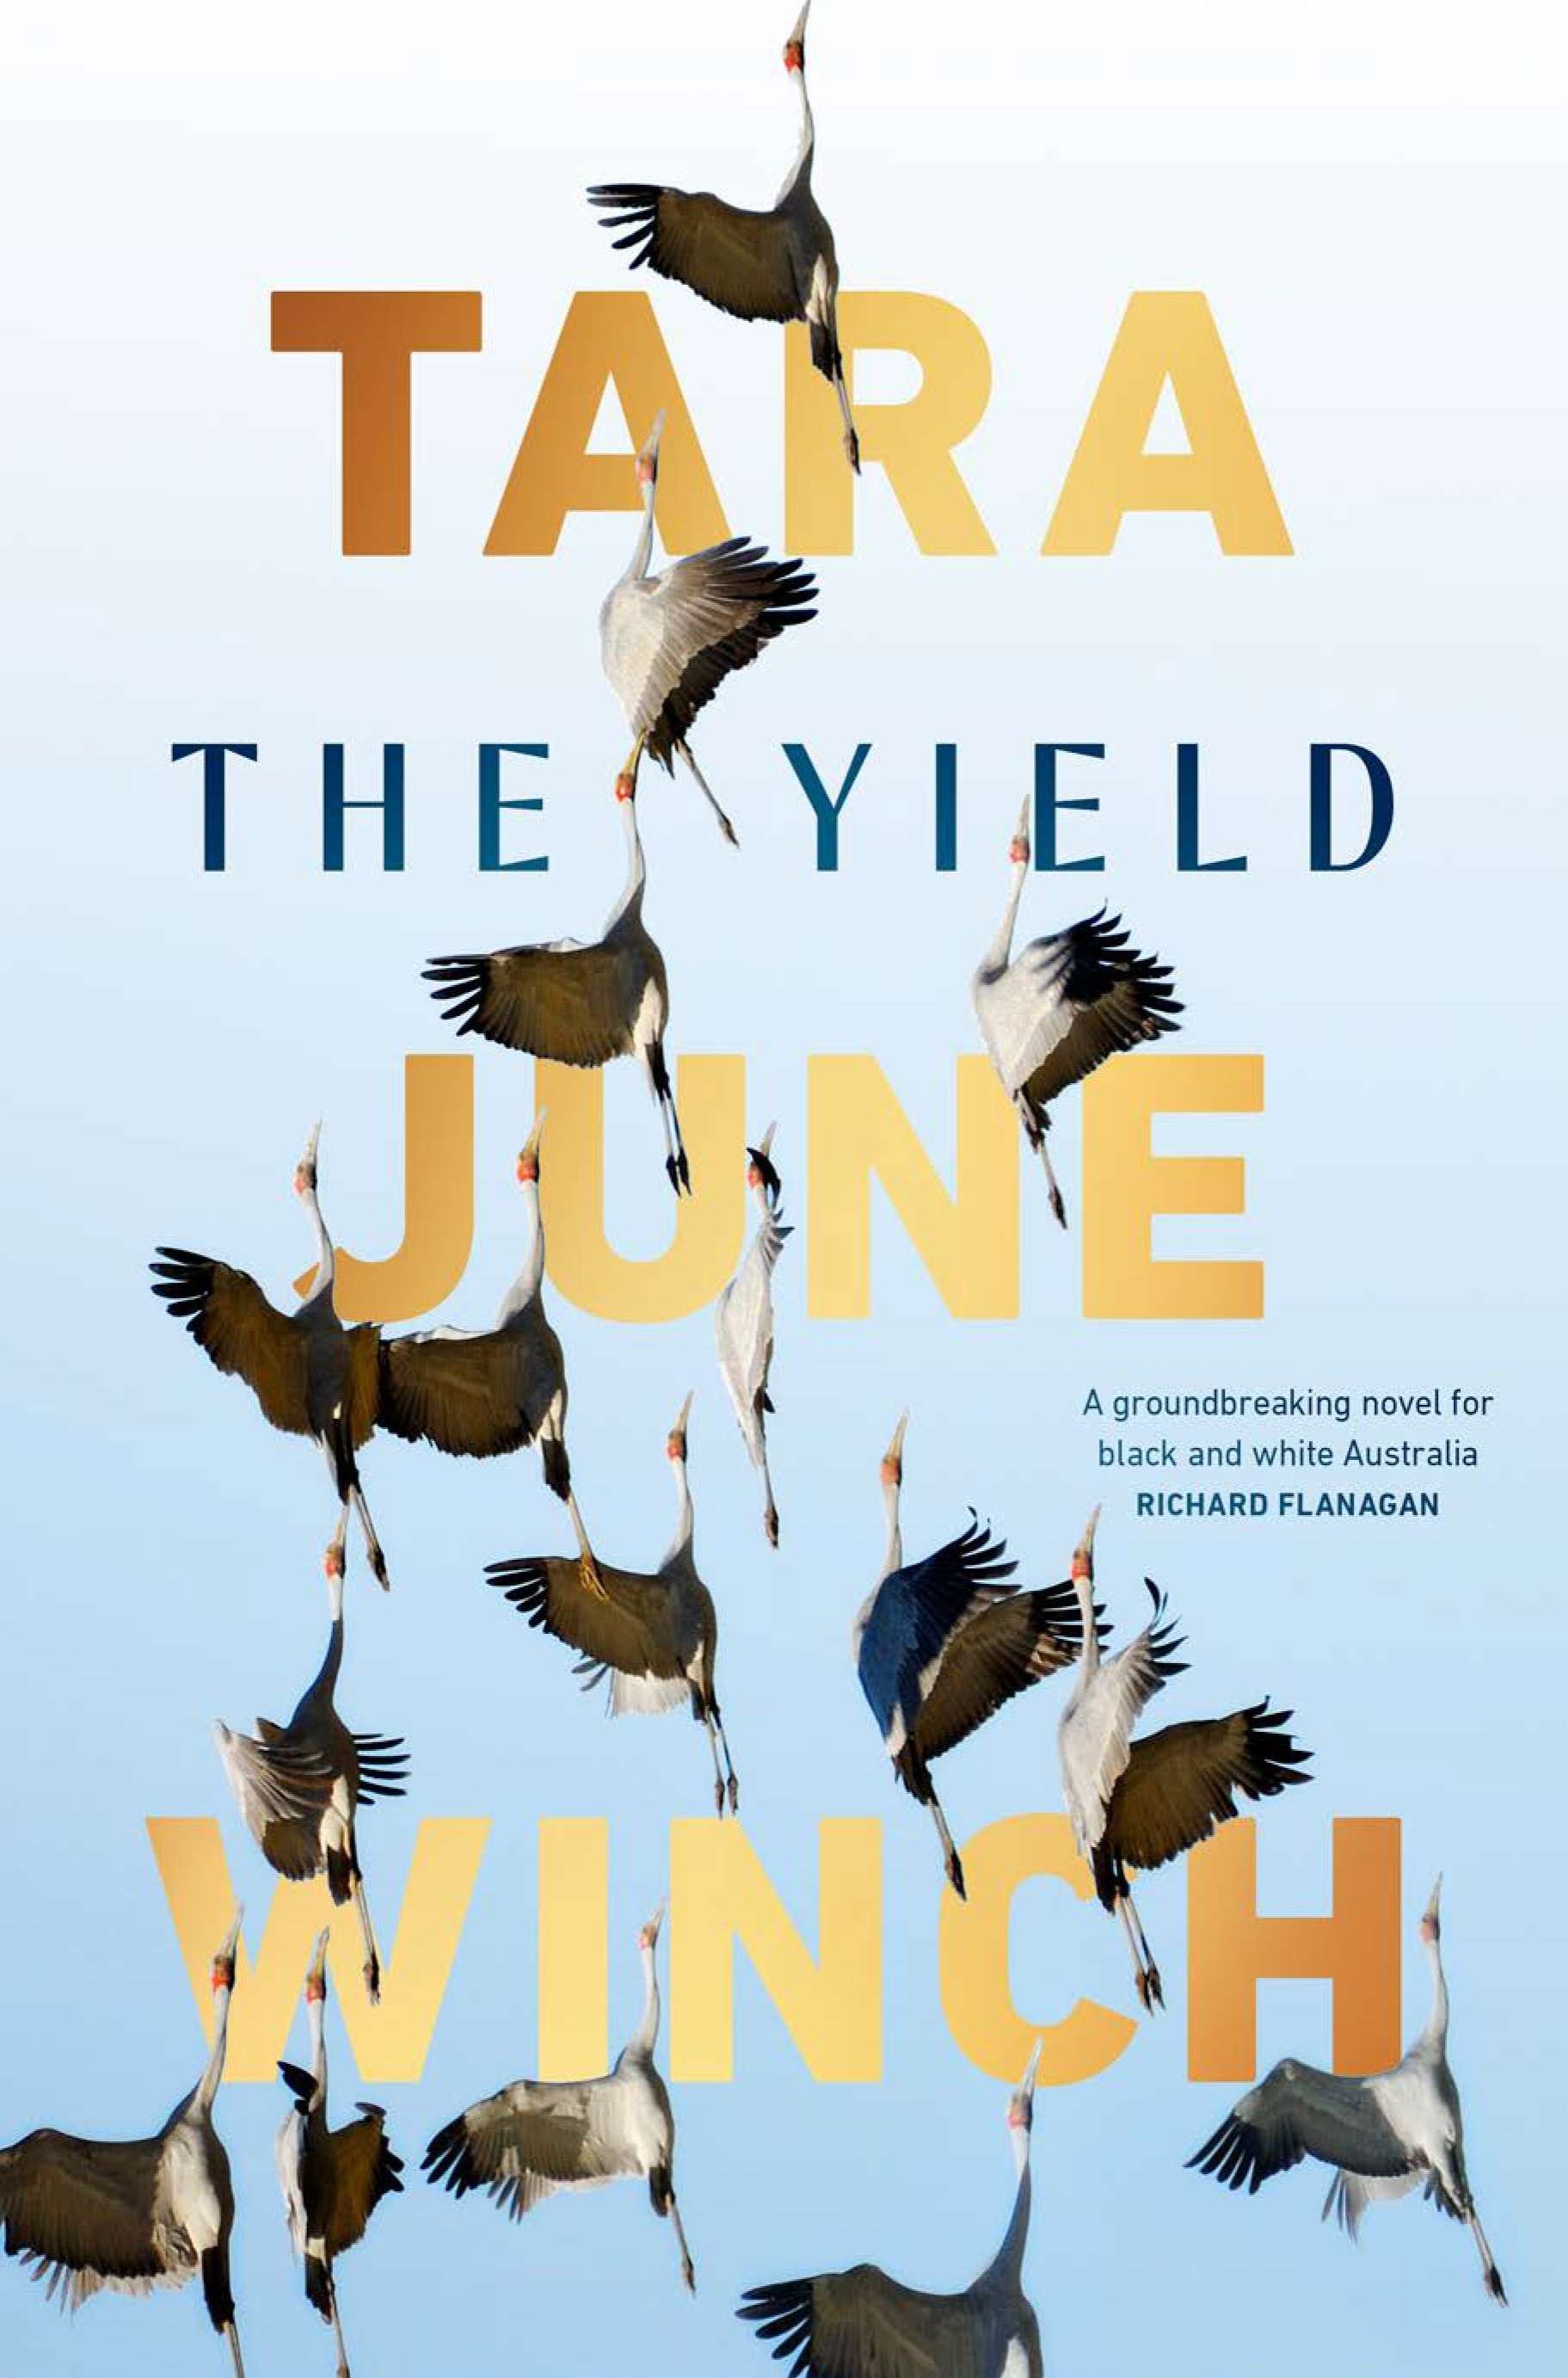 The Yield by Tara June Winch book cover featuring a flock of brolgas dancing in the sky